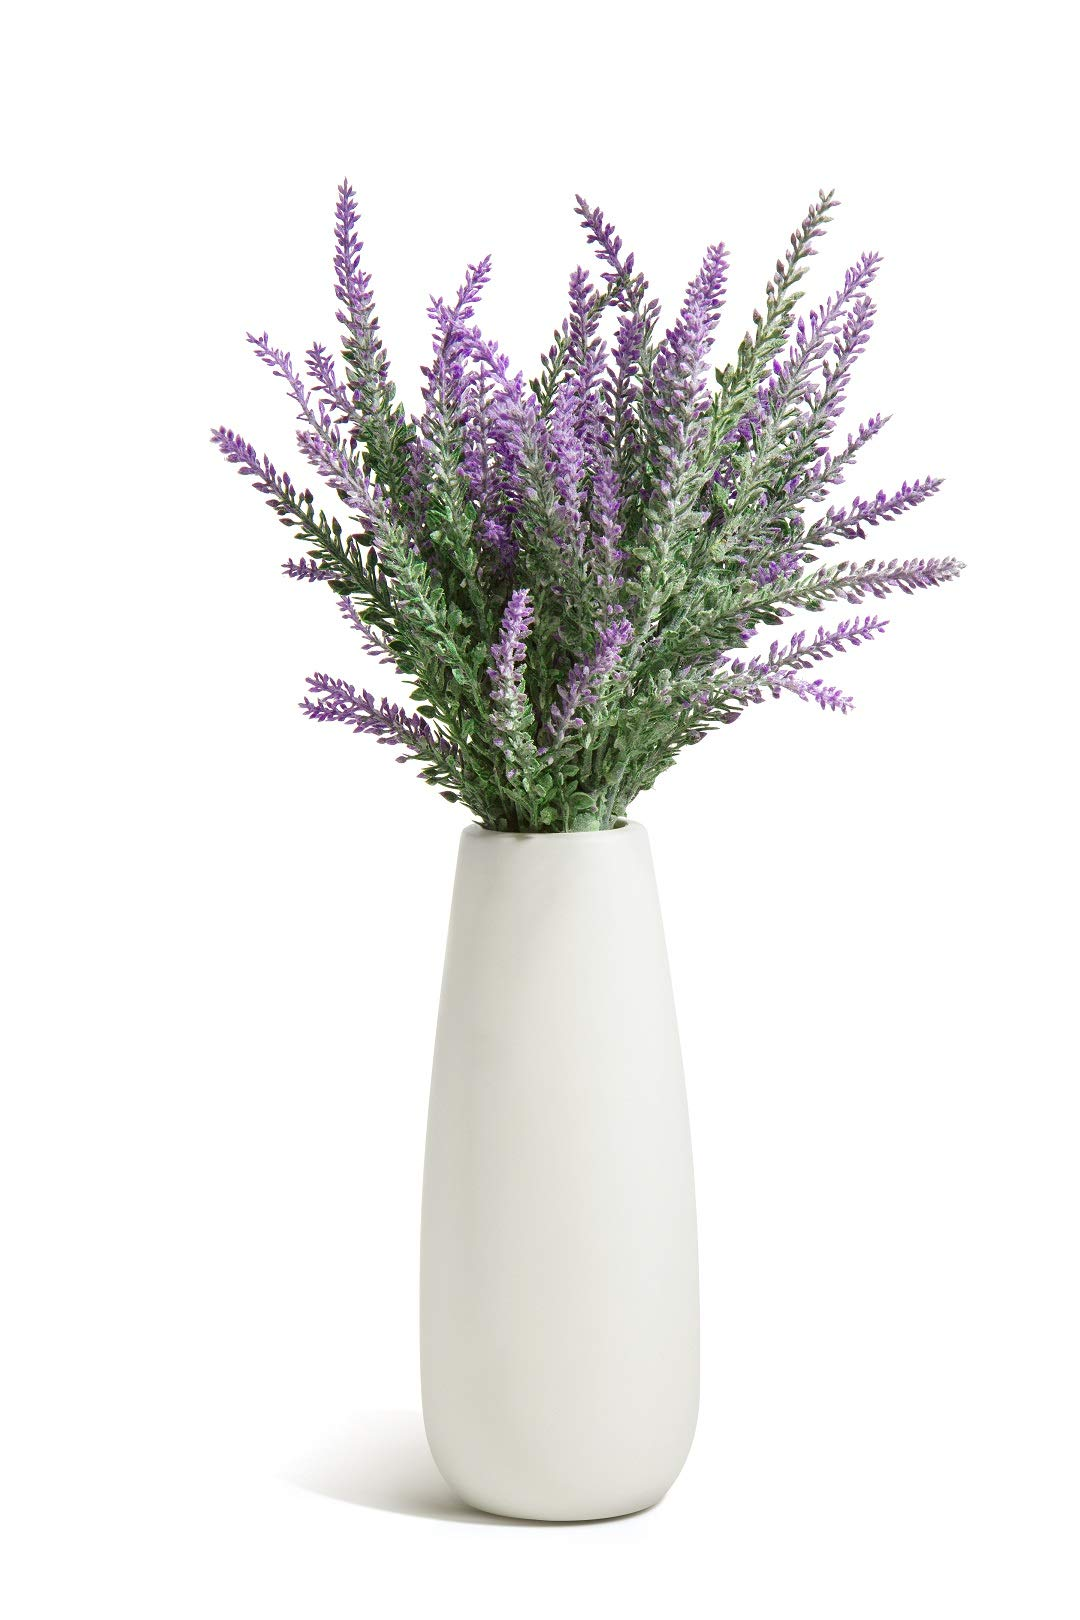 Opps-Artificial-Lavender-Flowers-Bouquet-with-White-Ceramic-Vase-for-Home-Party-Wedding-Dcor